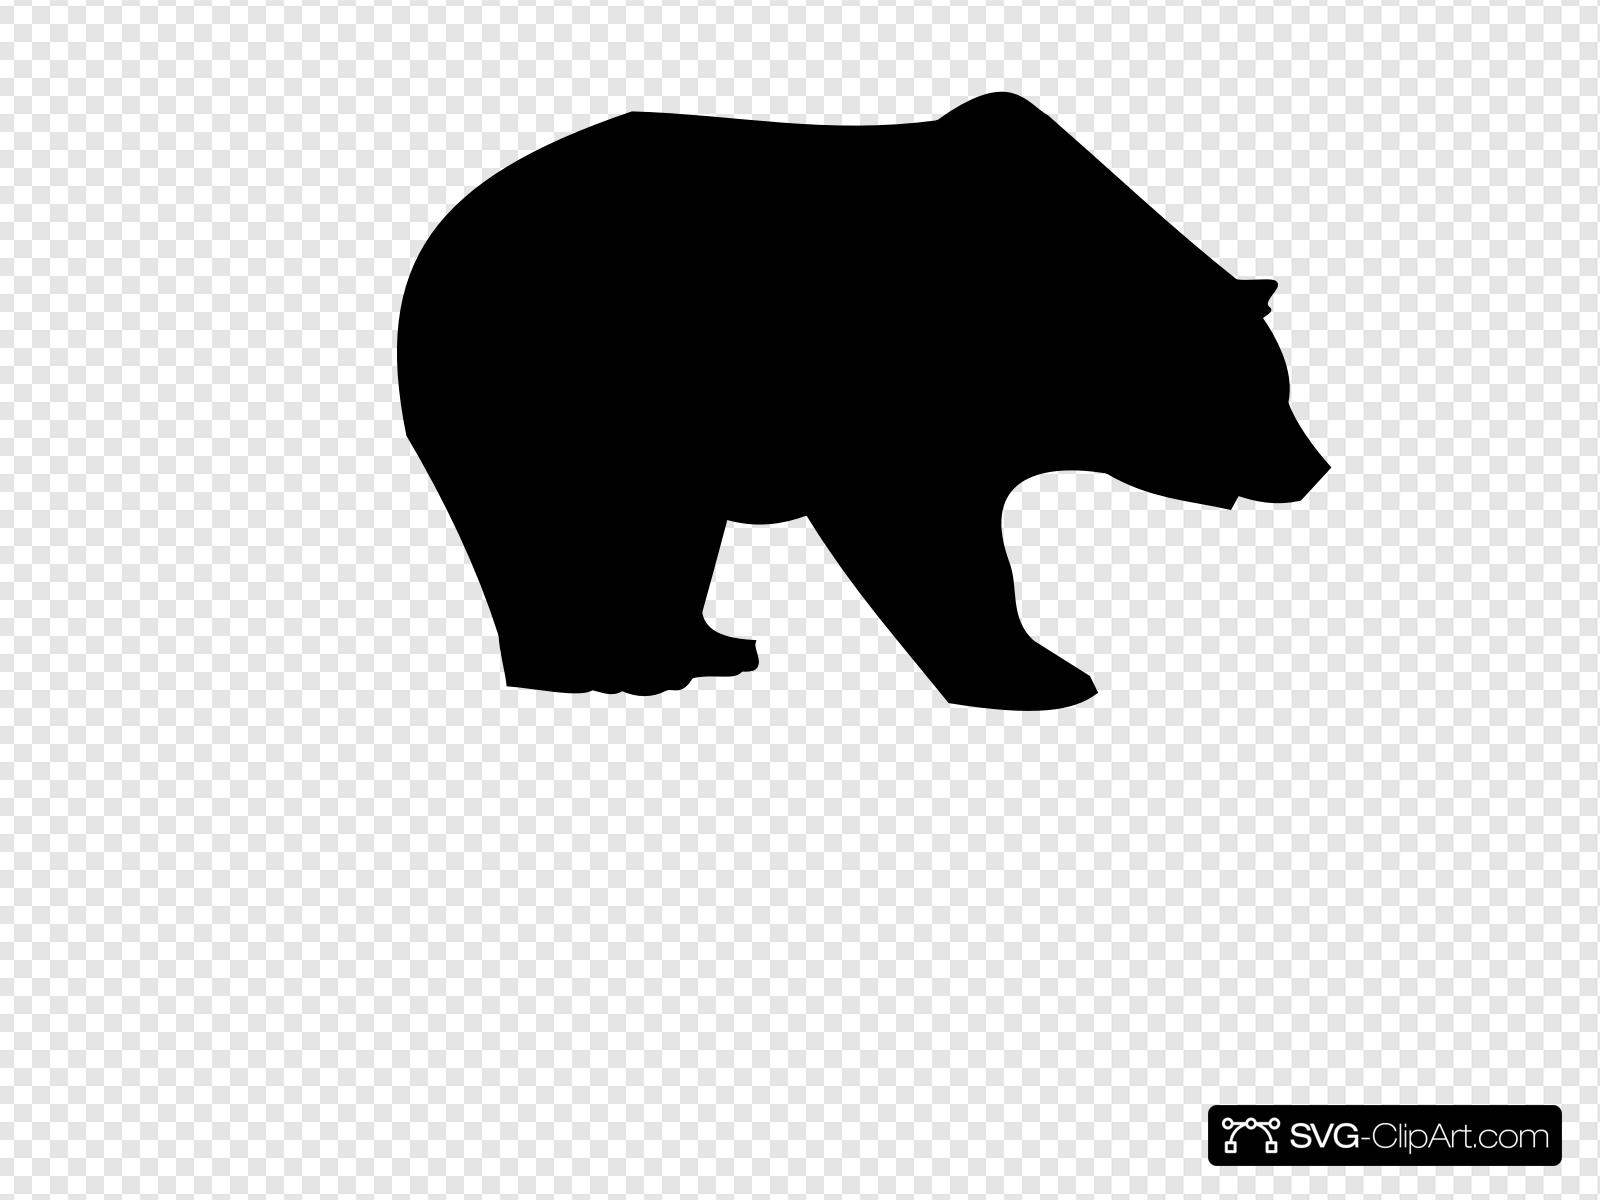 Bear Silhouette Clip art, Icon and SVG.